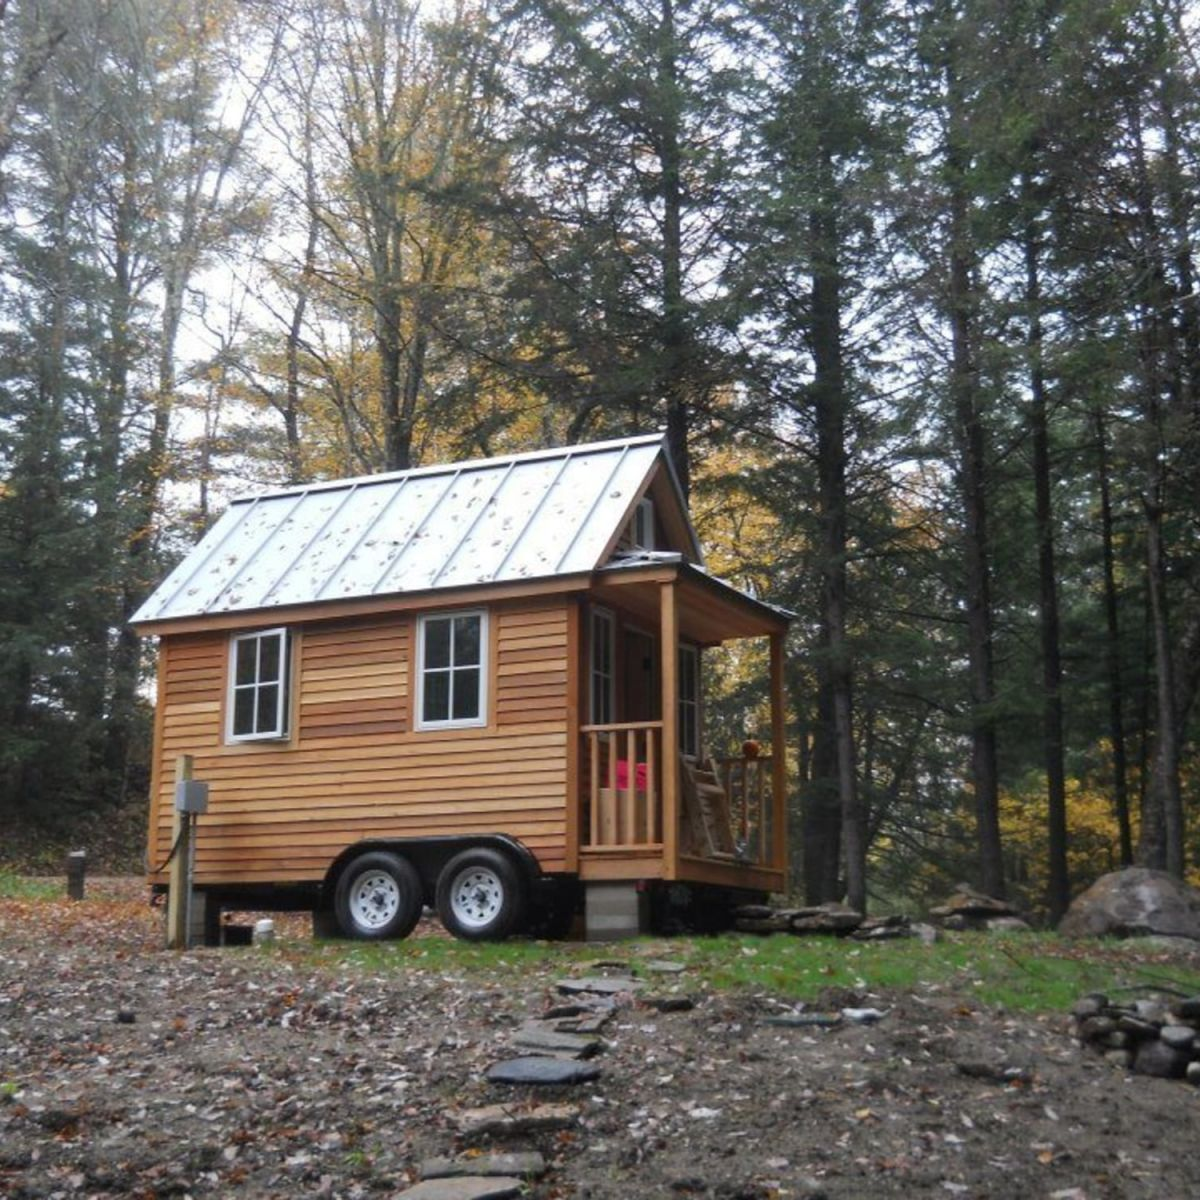 Tumbleweed Tiny House Cottages: Tumbleweed Tiny House For Sale With Land